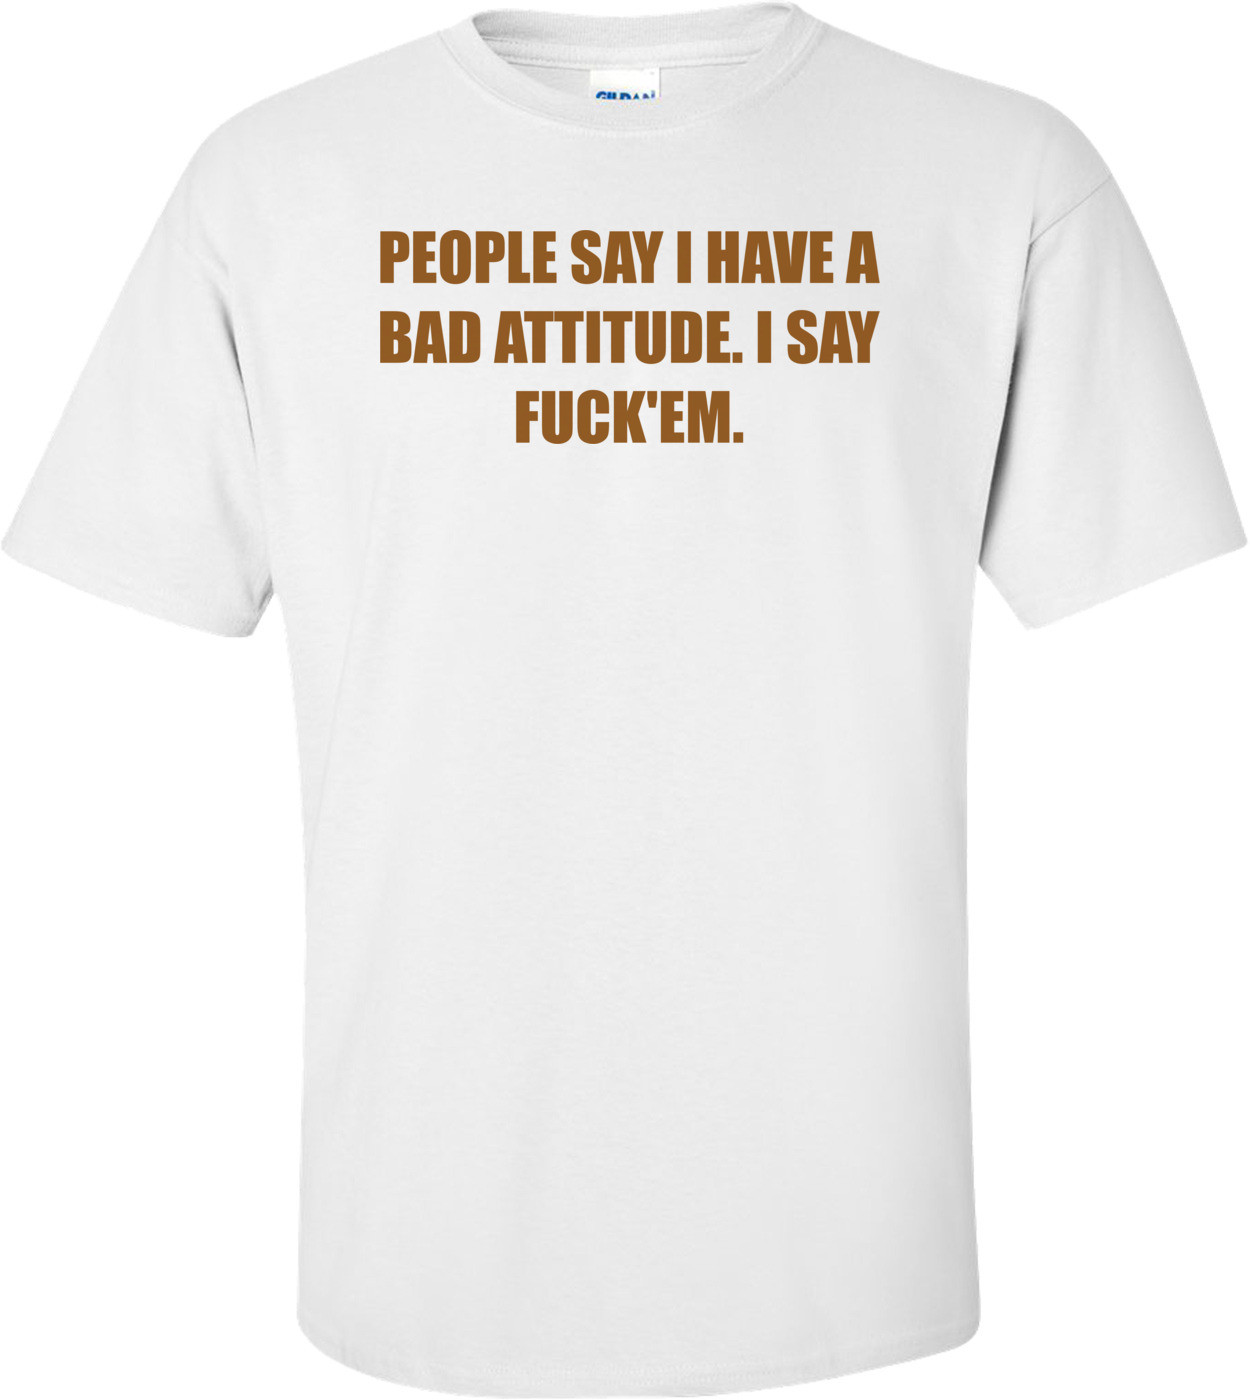 PEOPLE SAY I HAVE A BAD ATTITUDE. I SAY FUCK'EM. Shirt